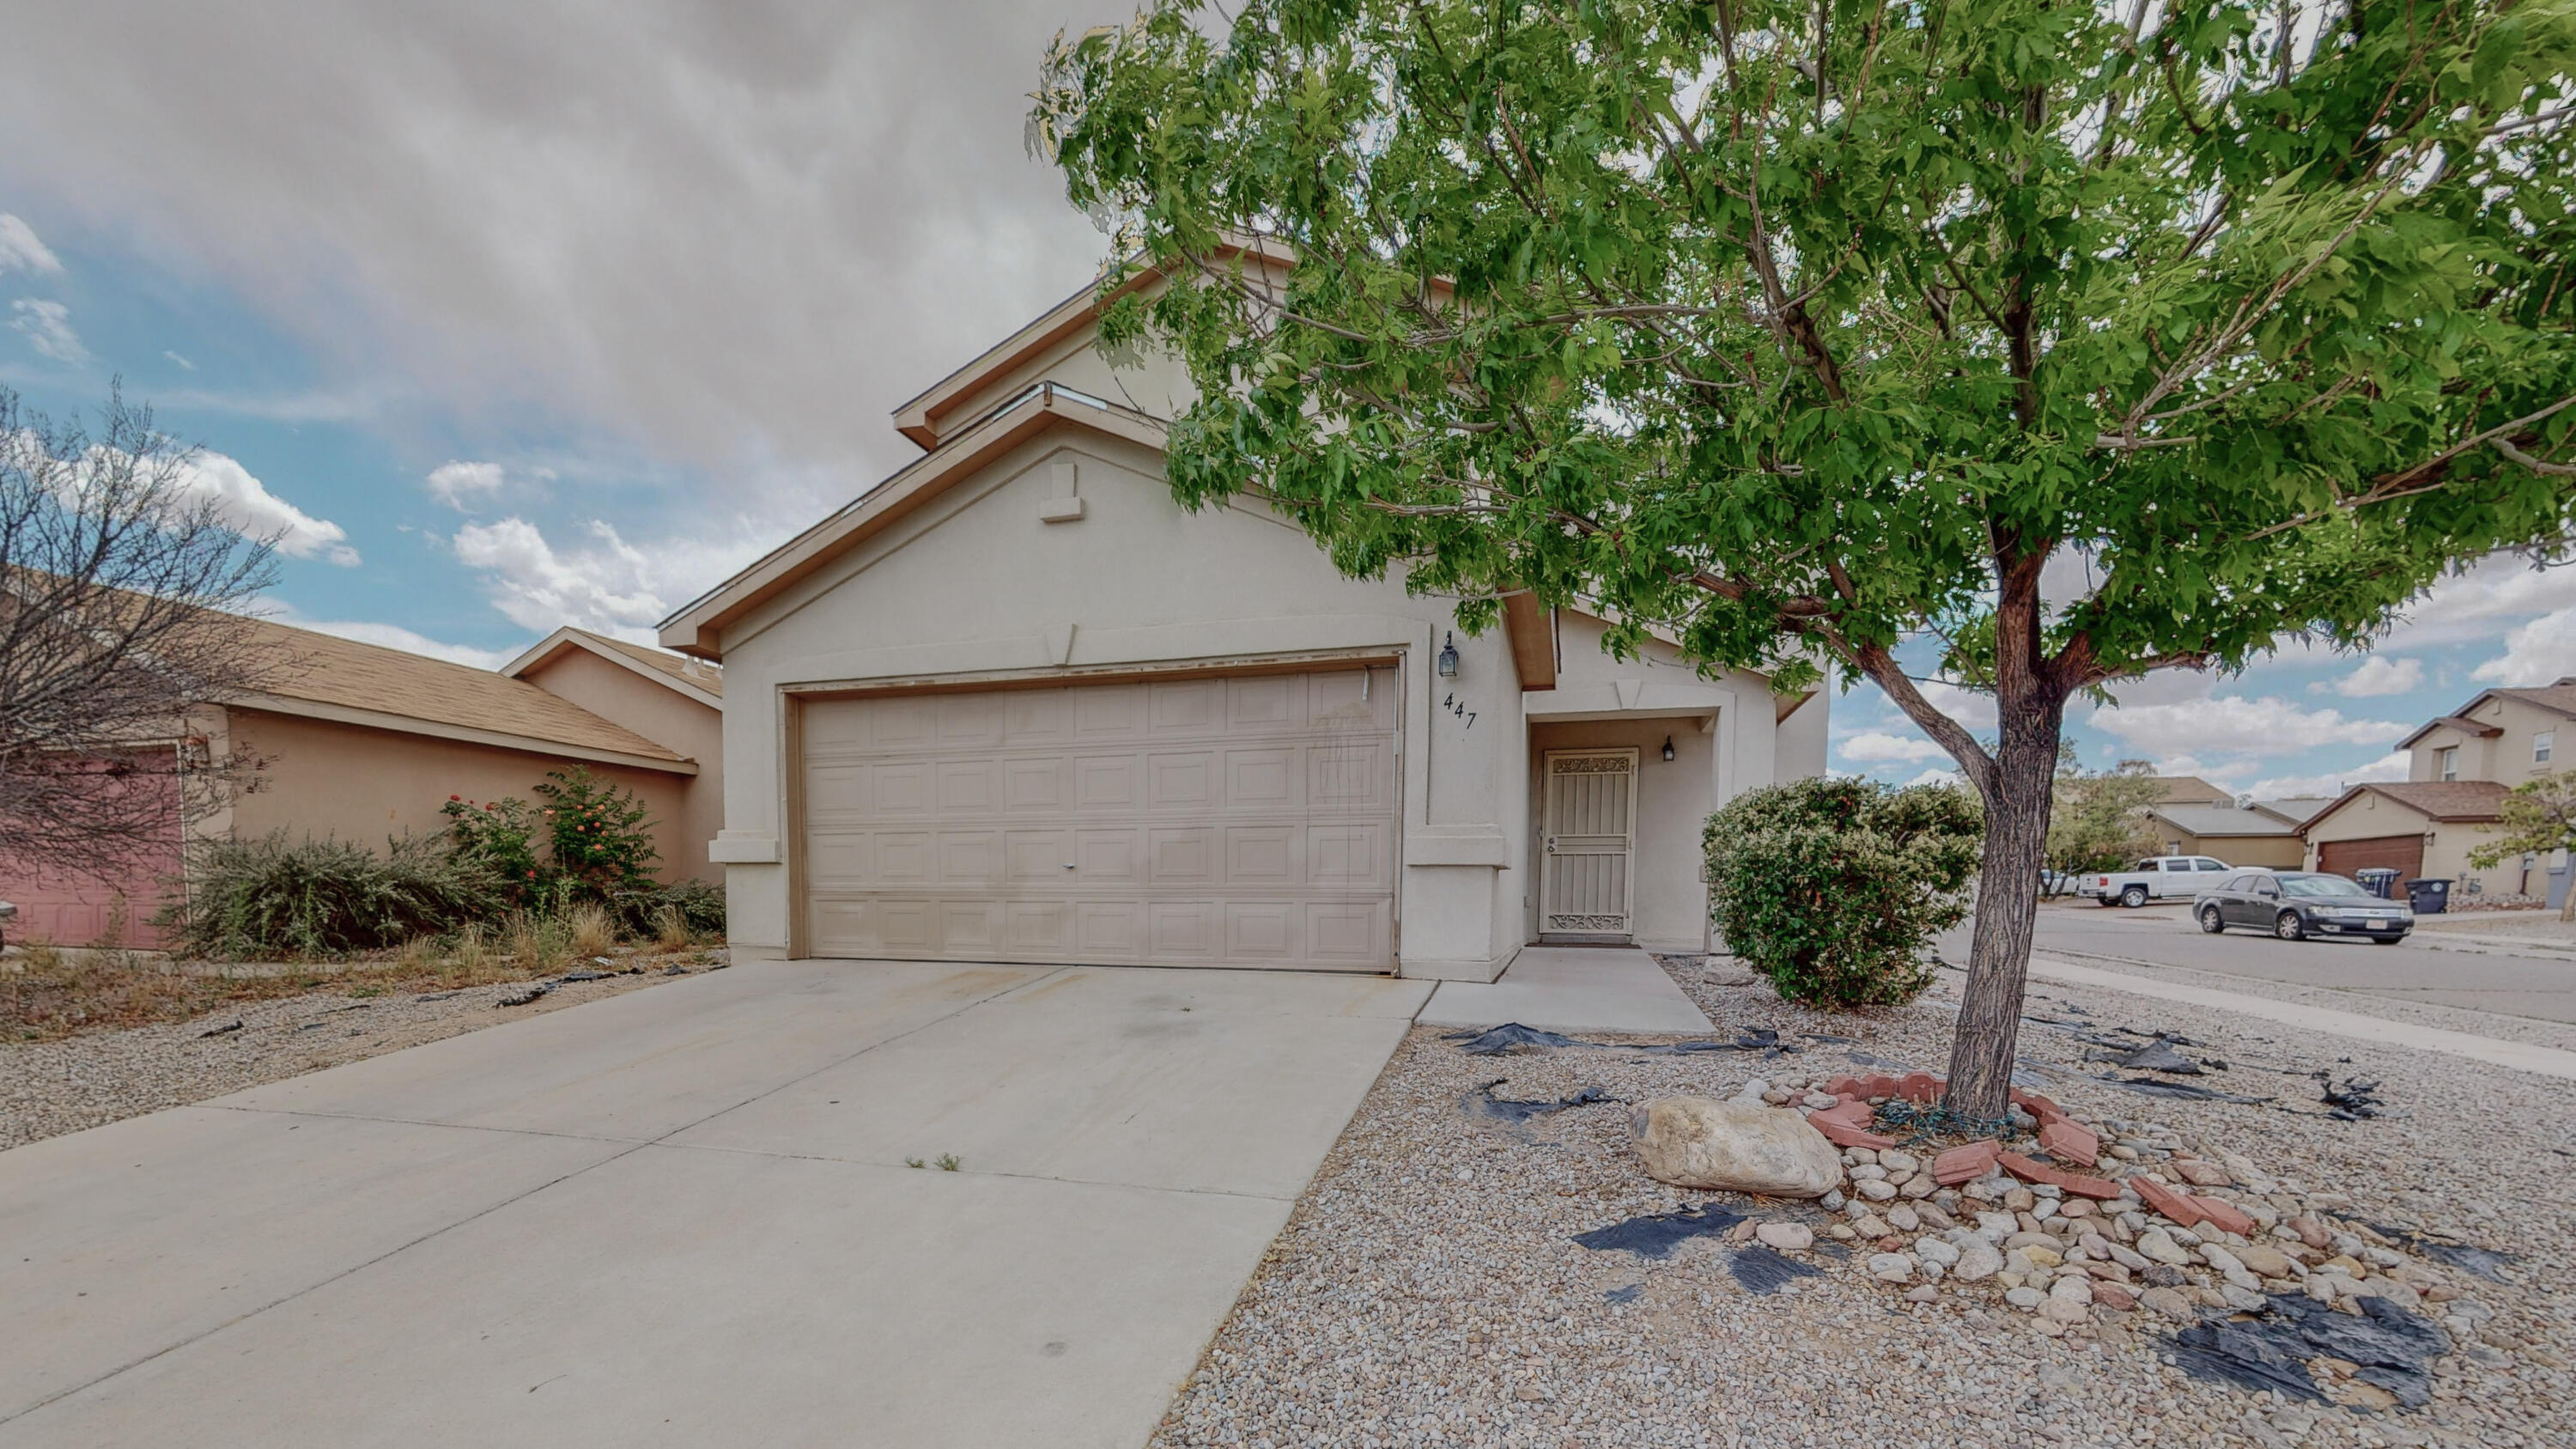 Great opportunity for a 3 BR 2.5 BA  2 CG home on a corner lot!  Nice, open floorplan with all bedrooms upstairs. New water heater being installed on 5/21/2021. Excellent backyard! Easy access to I-40